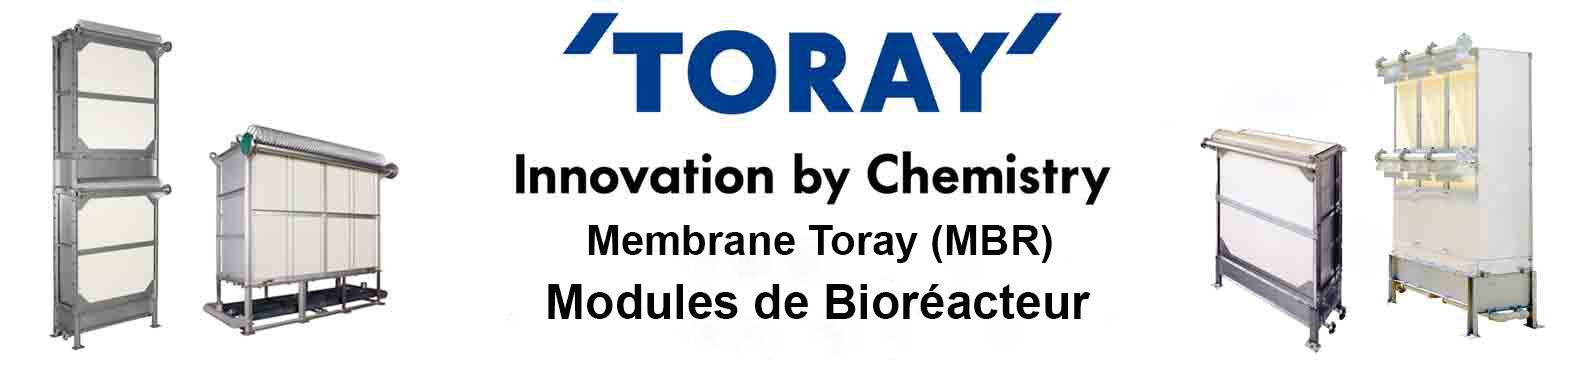 modules-de-bioreacteur-a-membrane-toray-mbr.jpg